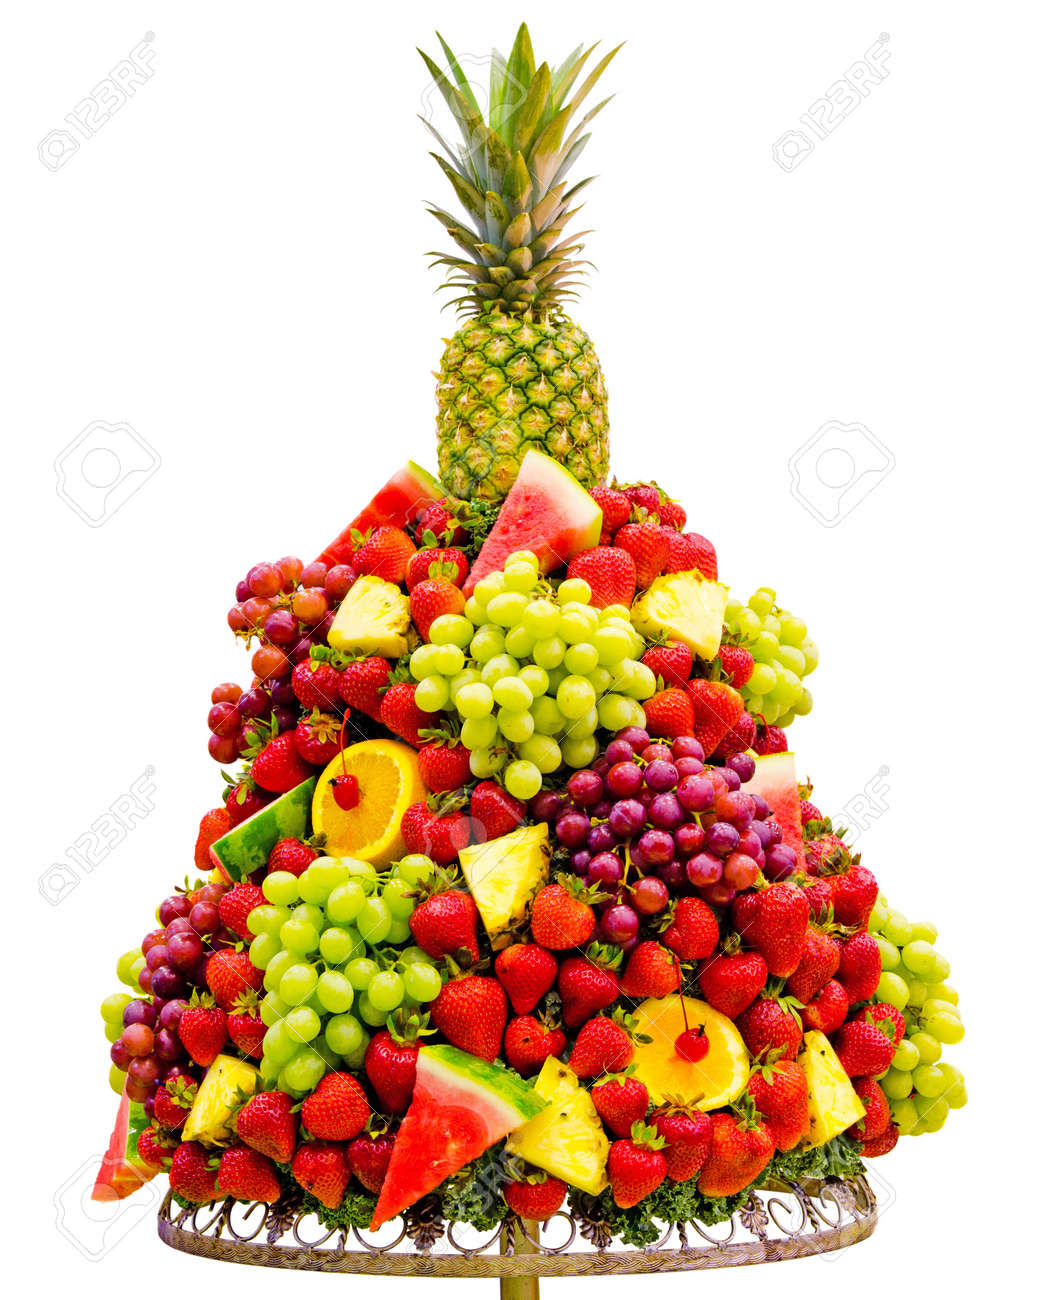 Ananas Buffet prepared fruit tree with strawberries, oranges, pineapples, grapes